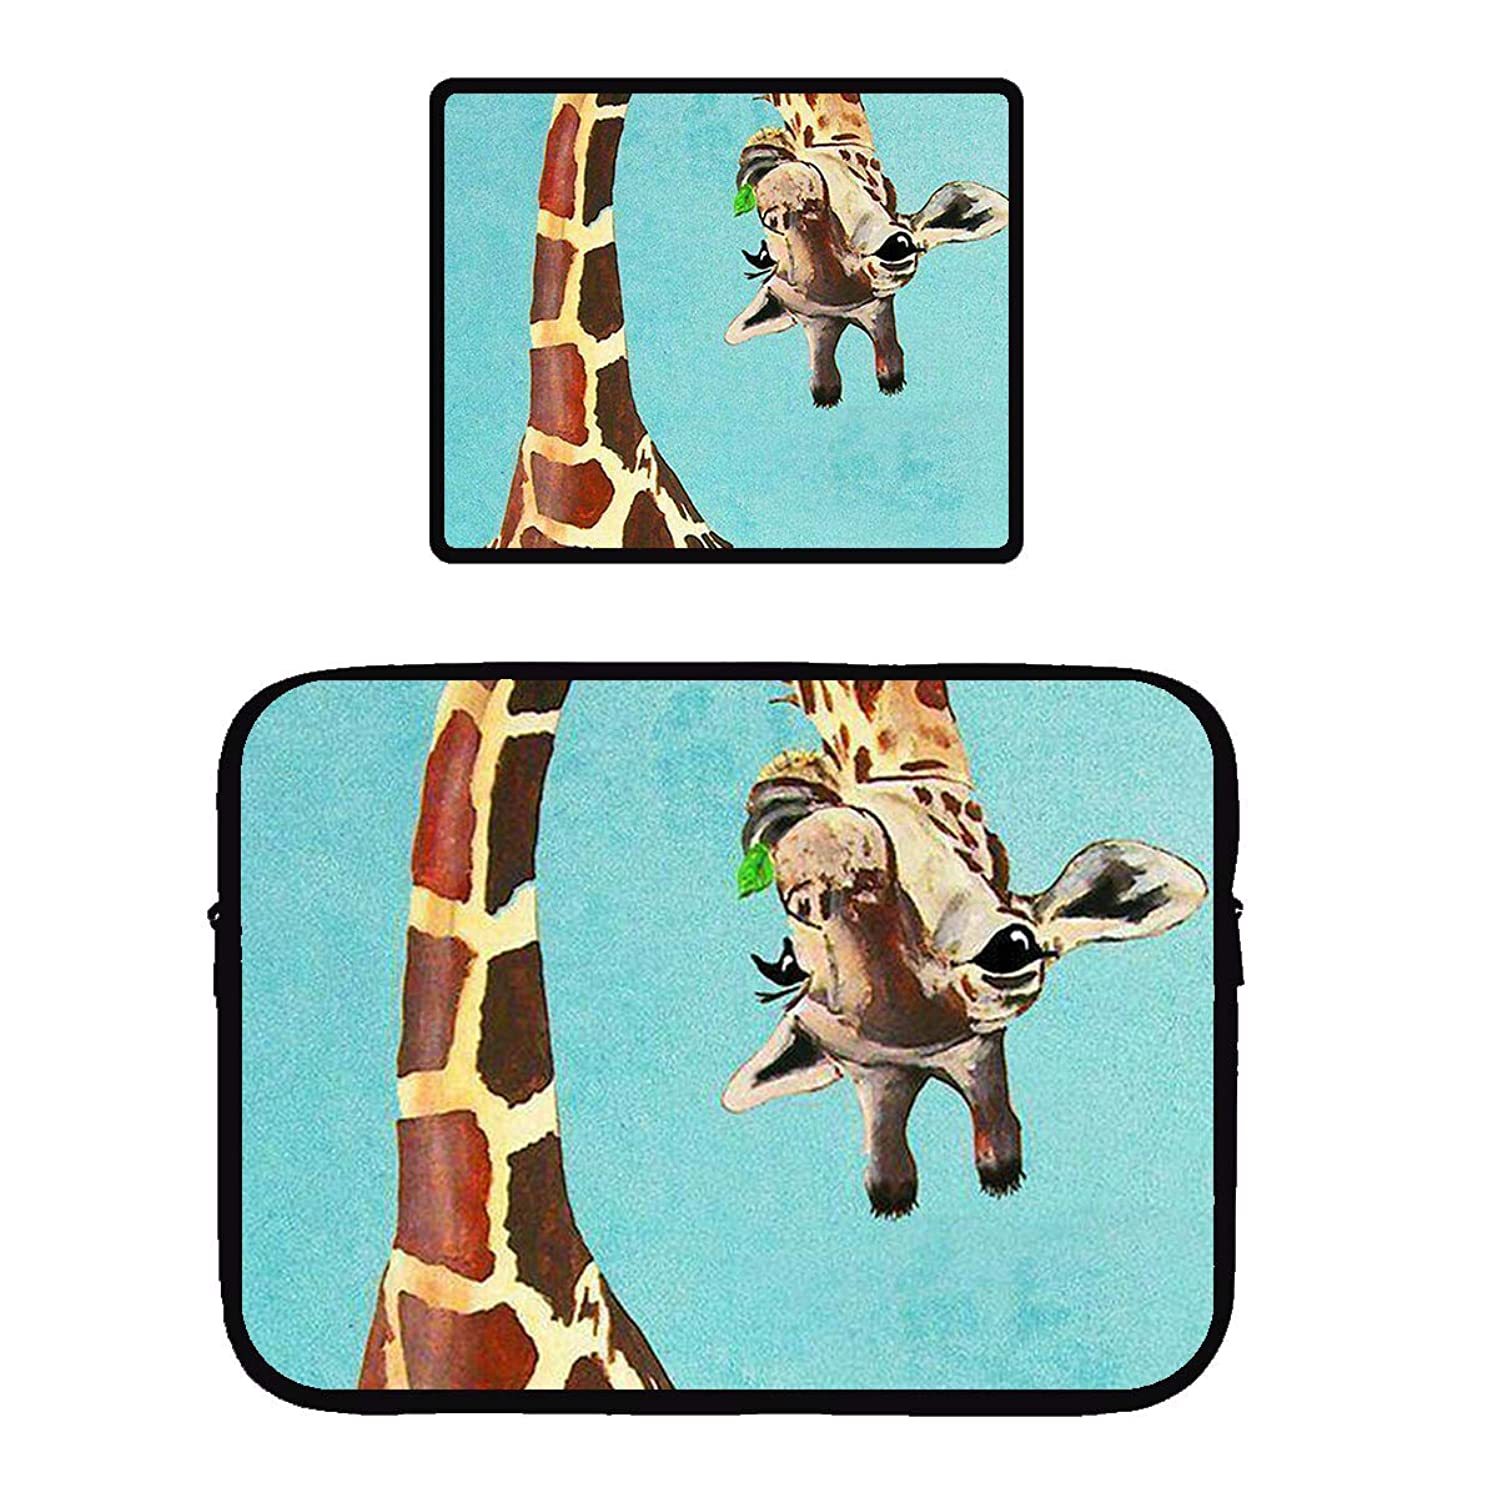 Beach Surfers Funny Giraffe Look at You Sky Blue Waterproof Laptop Computer Case Cover Sleeve & Mouse Pad Mousepad for Apple MacBook Air/Notebook/Netbook/Chromebook